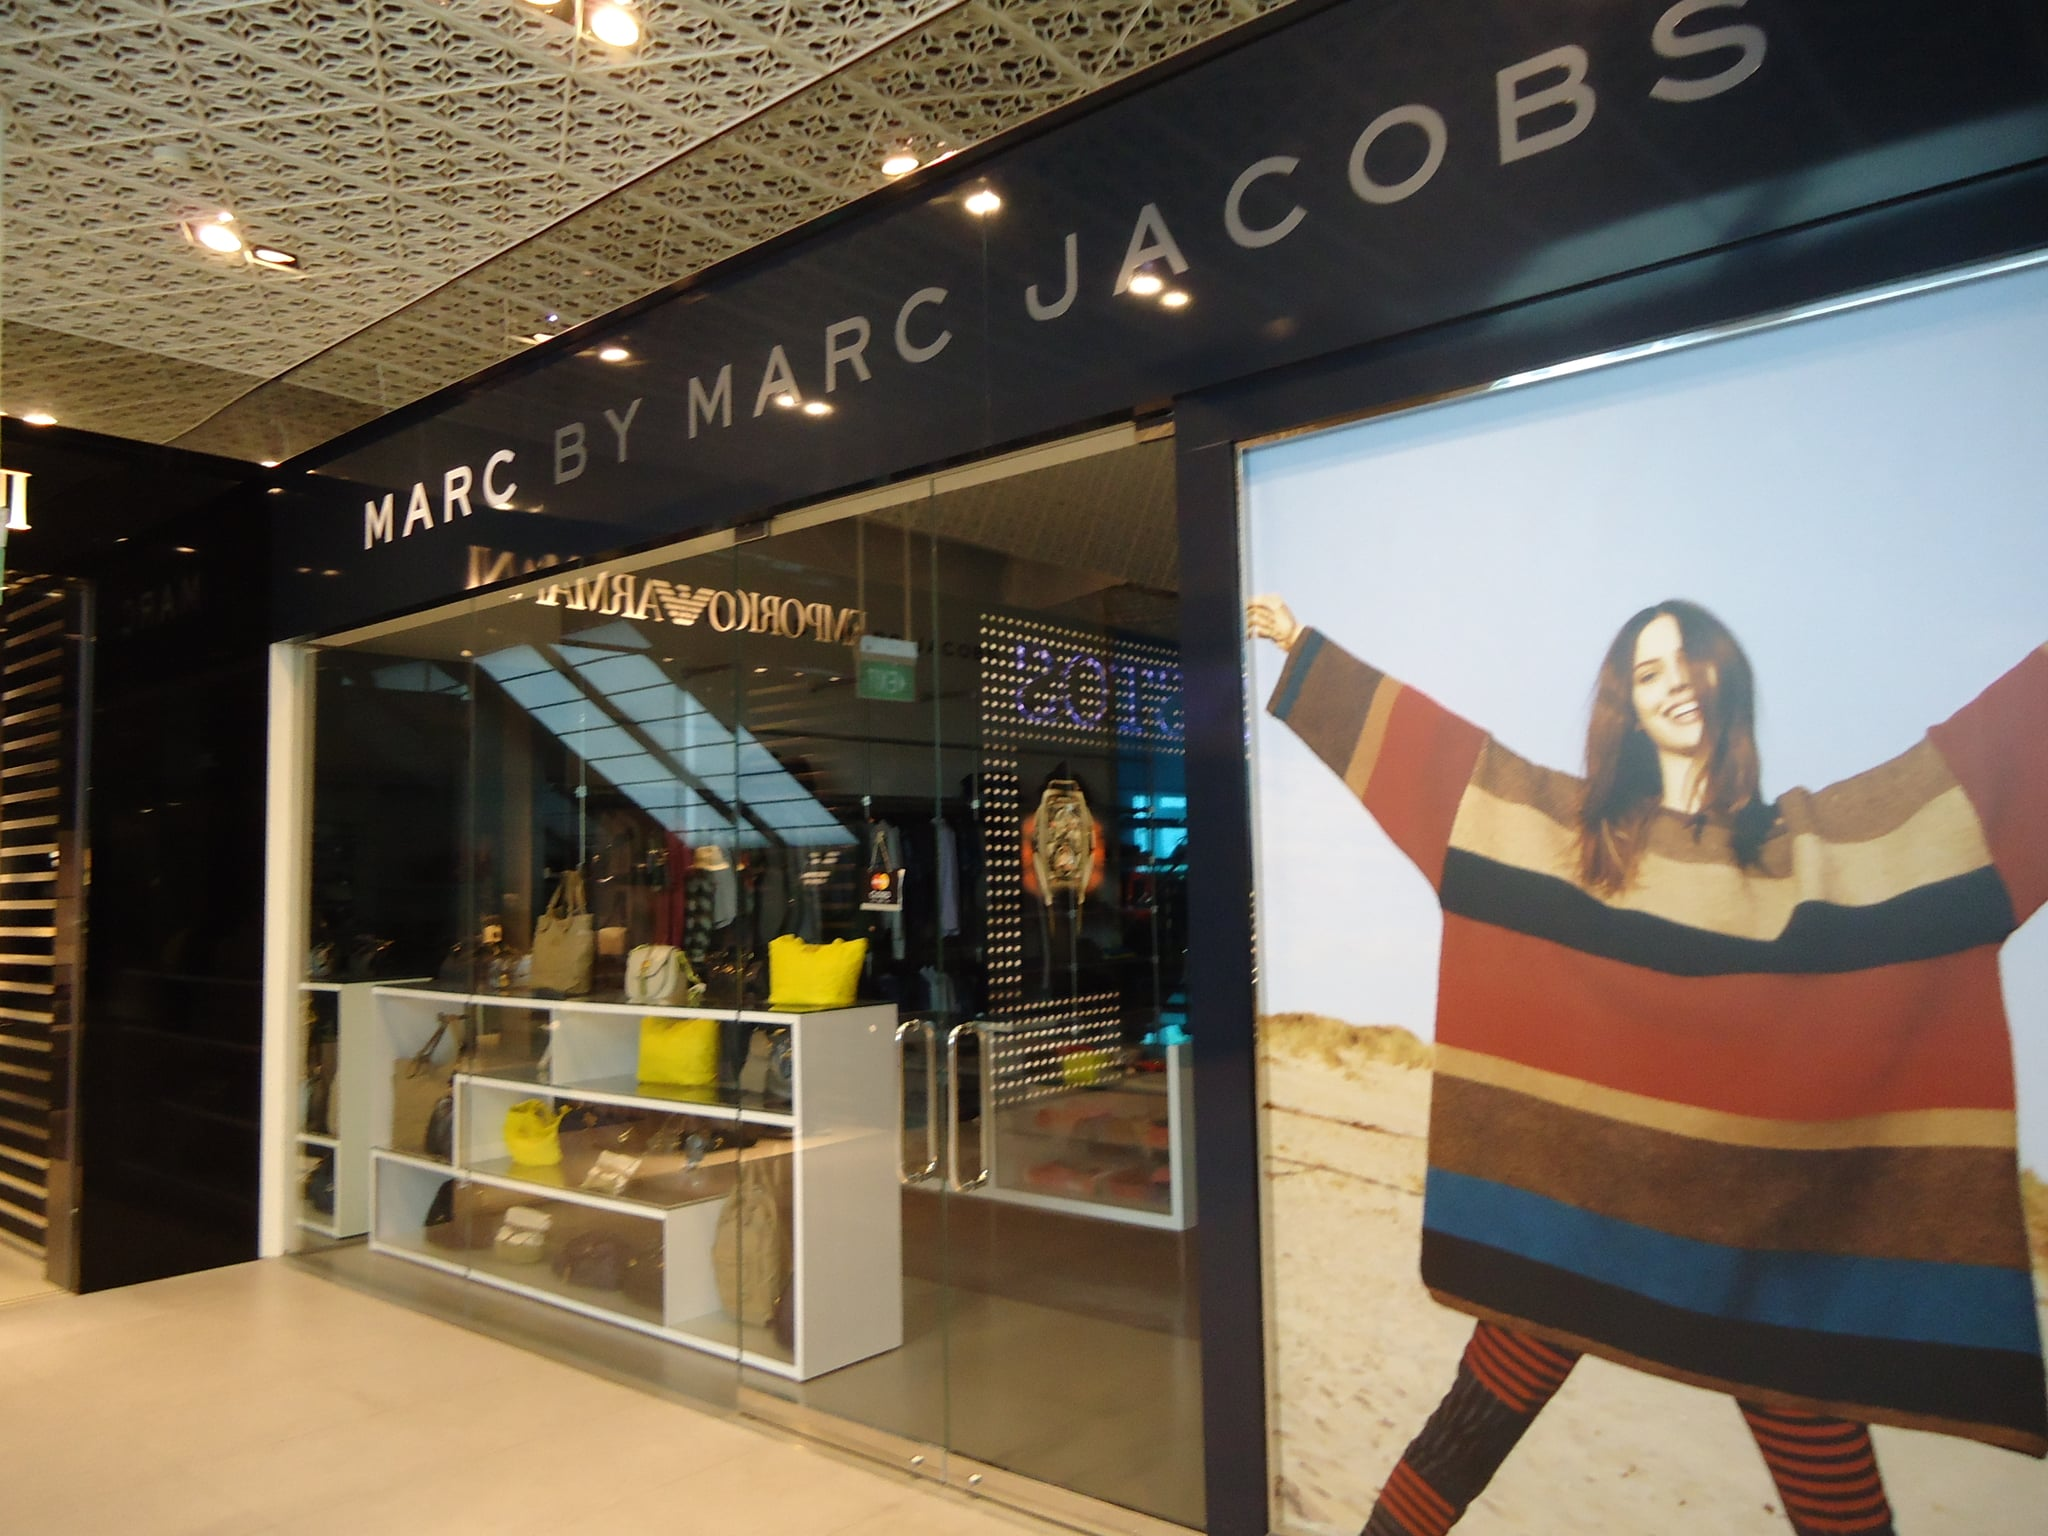 Holy moly, it's Marc by MarcJacobs. In my hotel lobby.